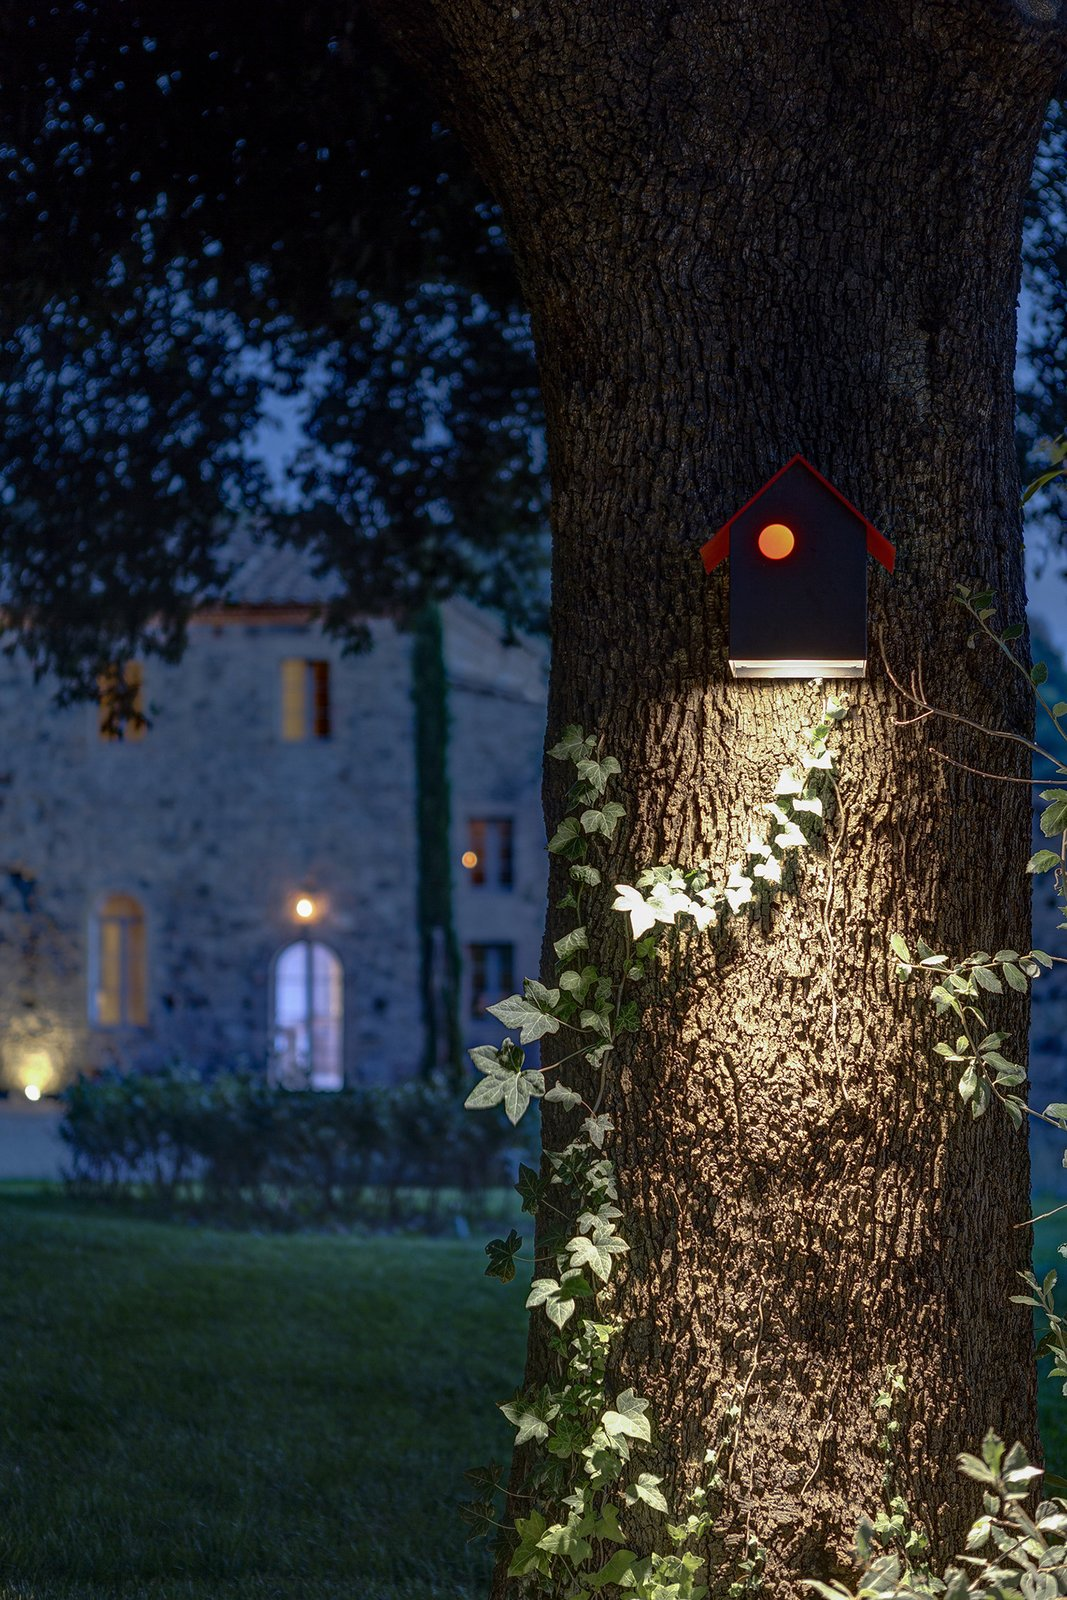 Photo 3 of 7 in A Nocturnal Marvel in Montalcino